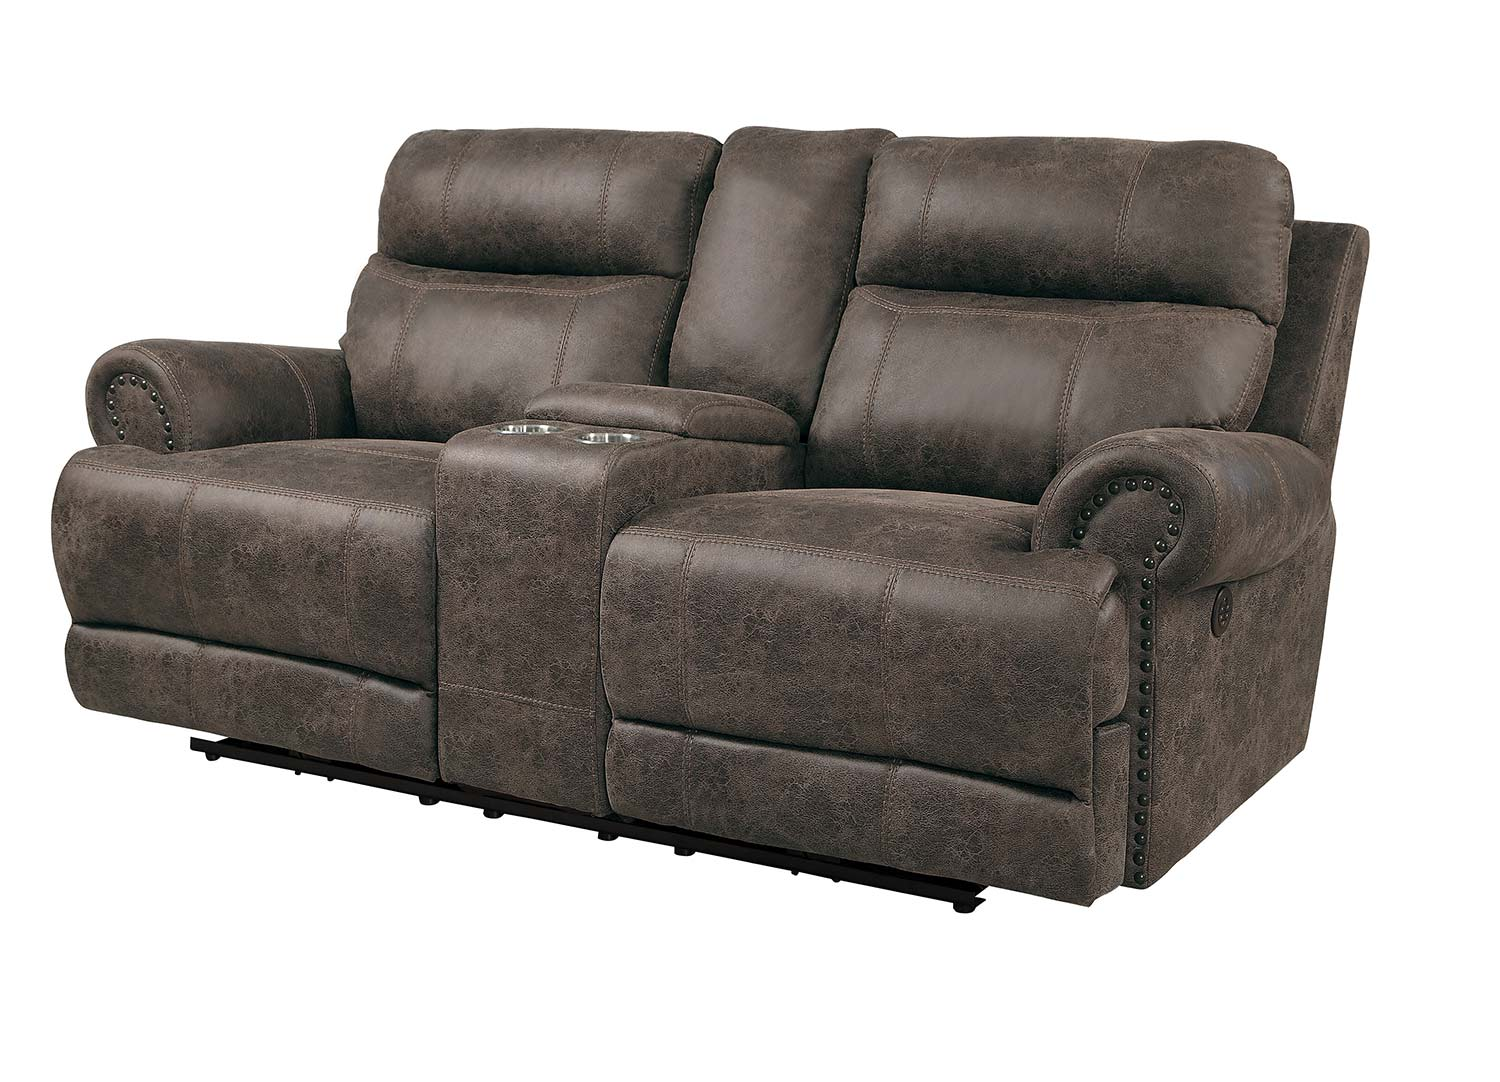 Homelegance Aggiano Double Reclining Love Seat - Dark Brown